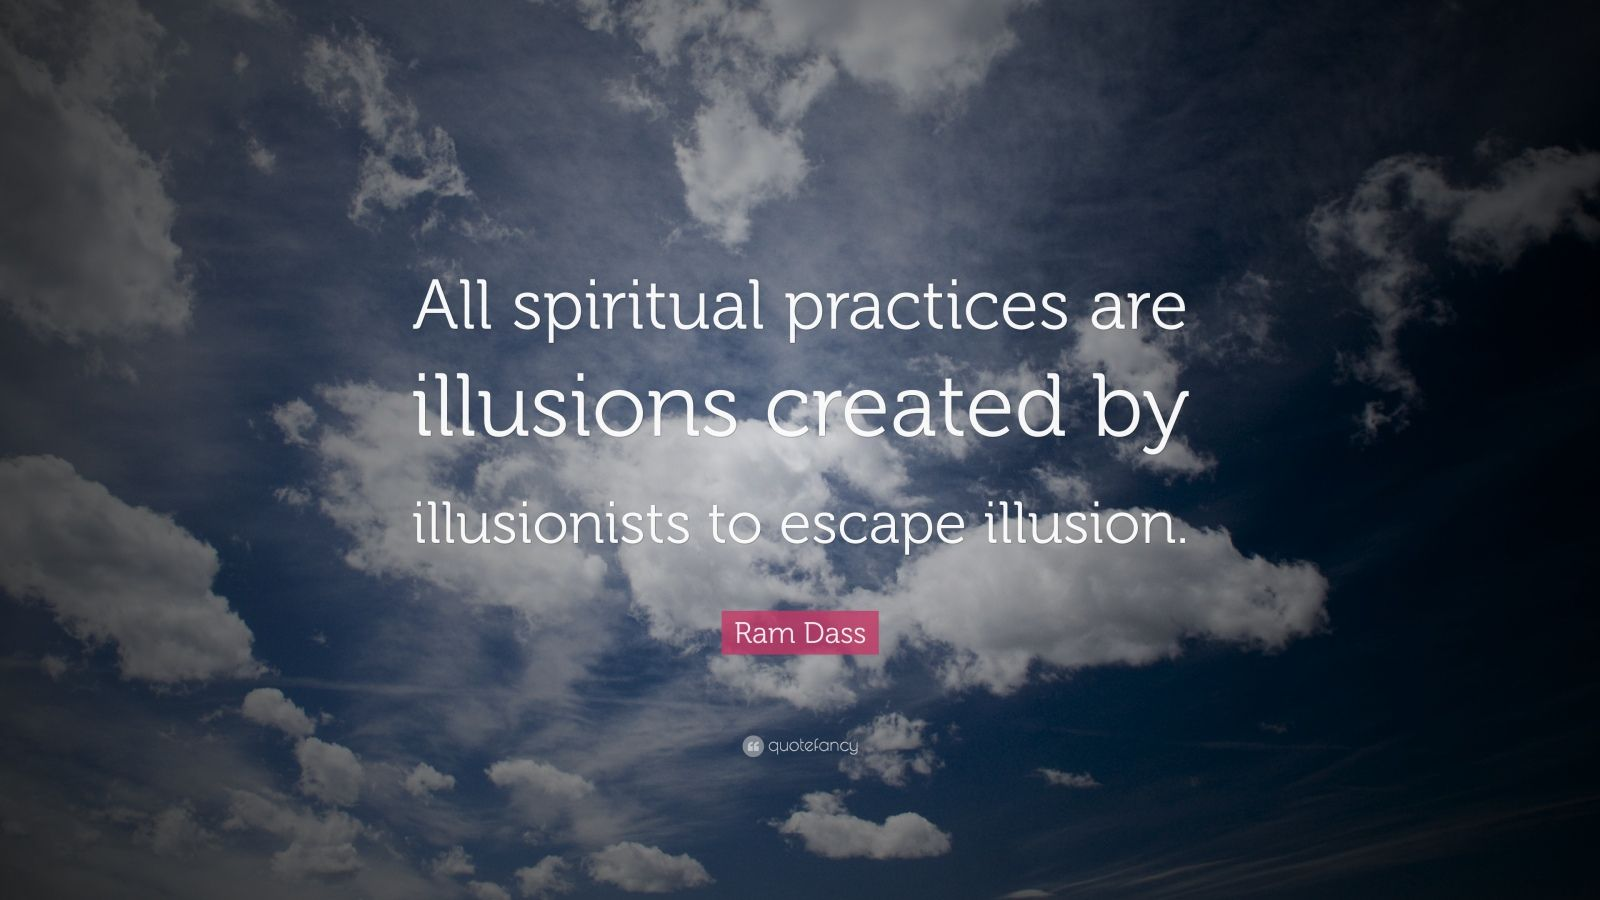 Wallpaper Of Yoga Quote Ram Dass Quote All Spiritual Practices Are Illusions